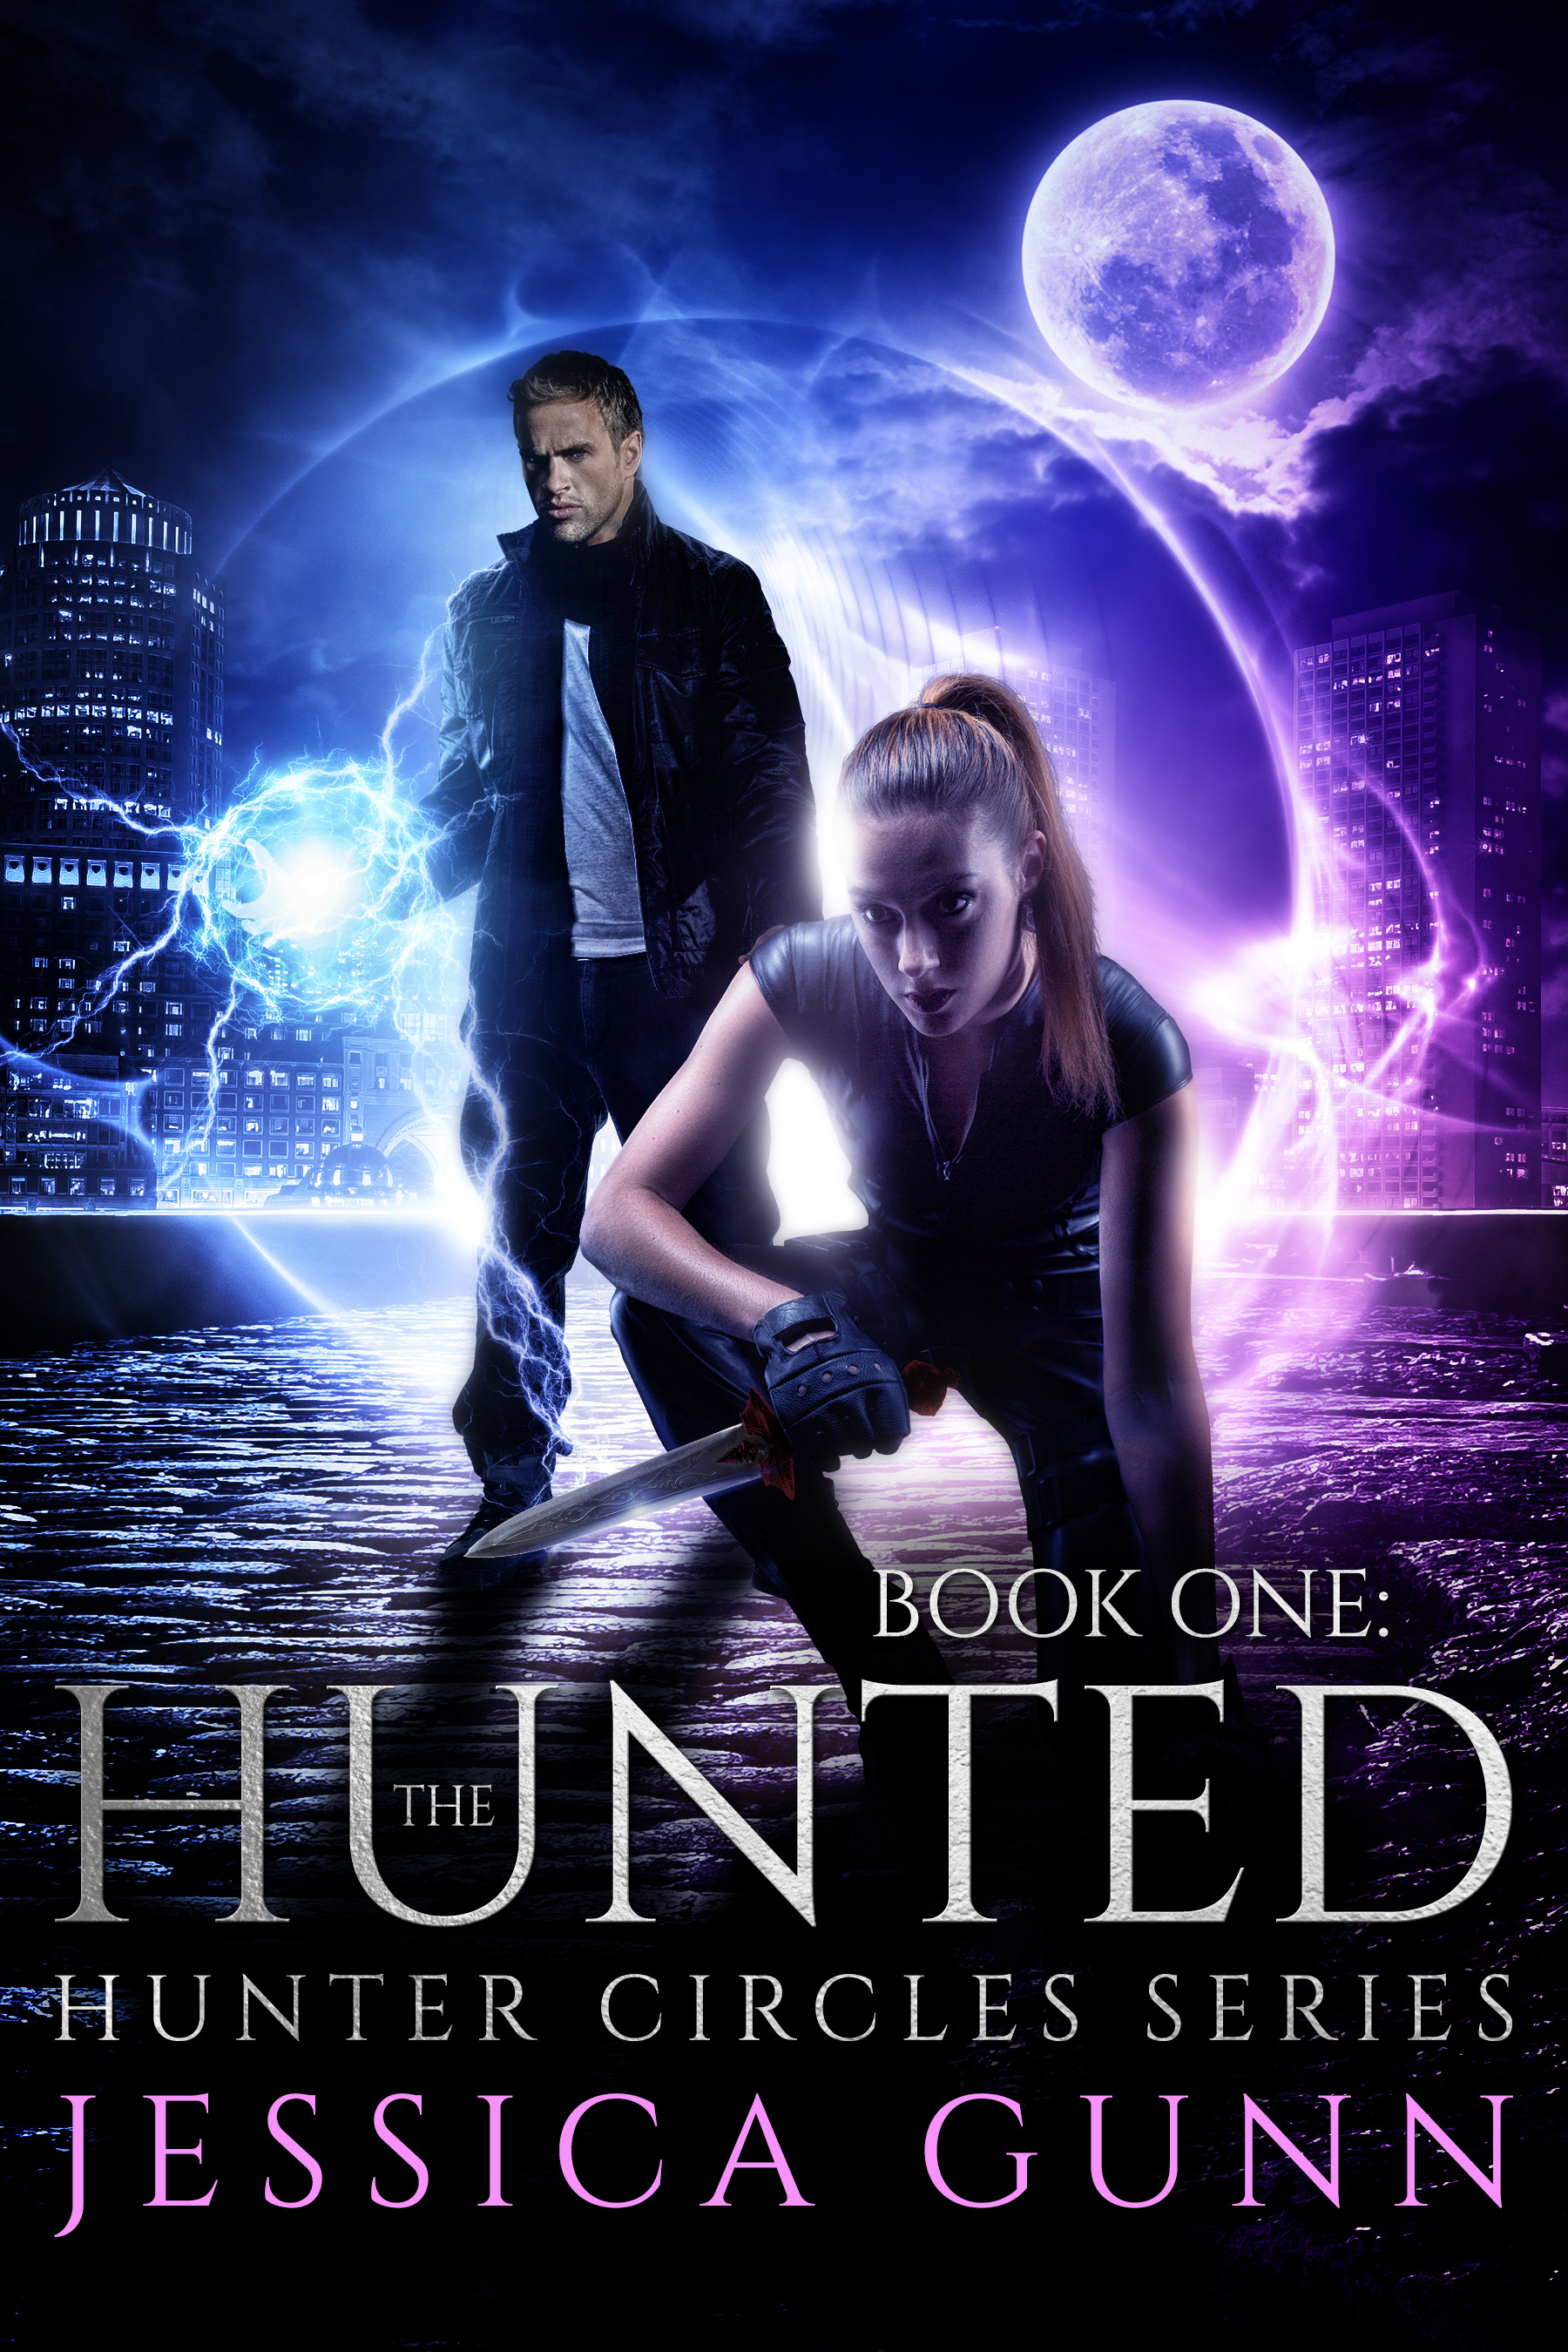 The Hunted Audiobook Tour